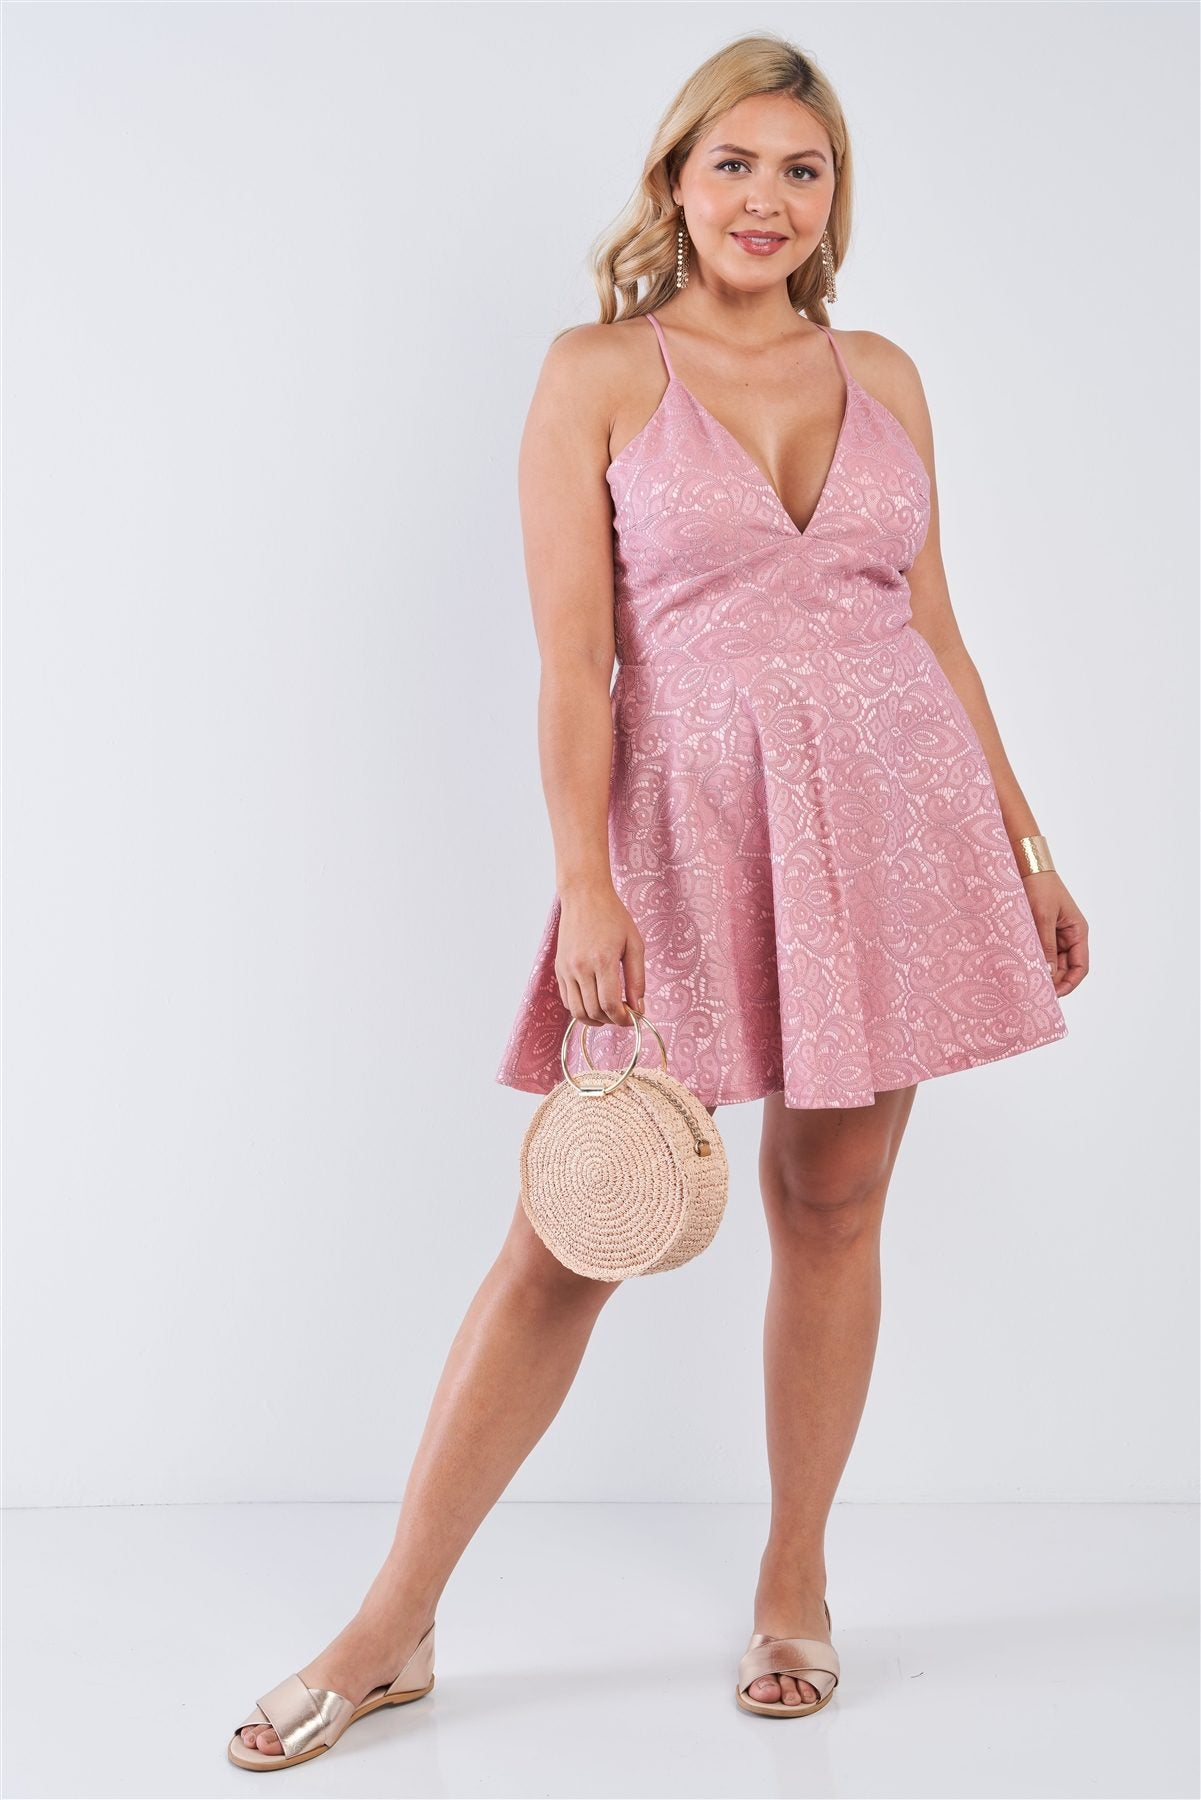 Plus Size V-neck Floral Lace Raceback Flare Skirt Mini Dress